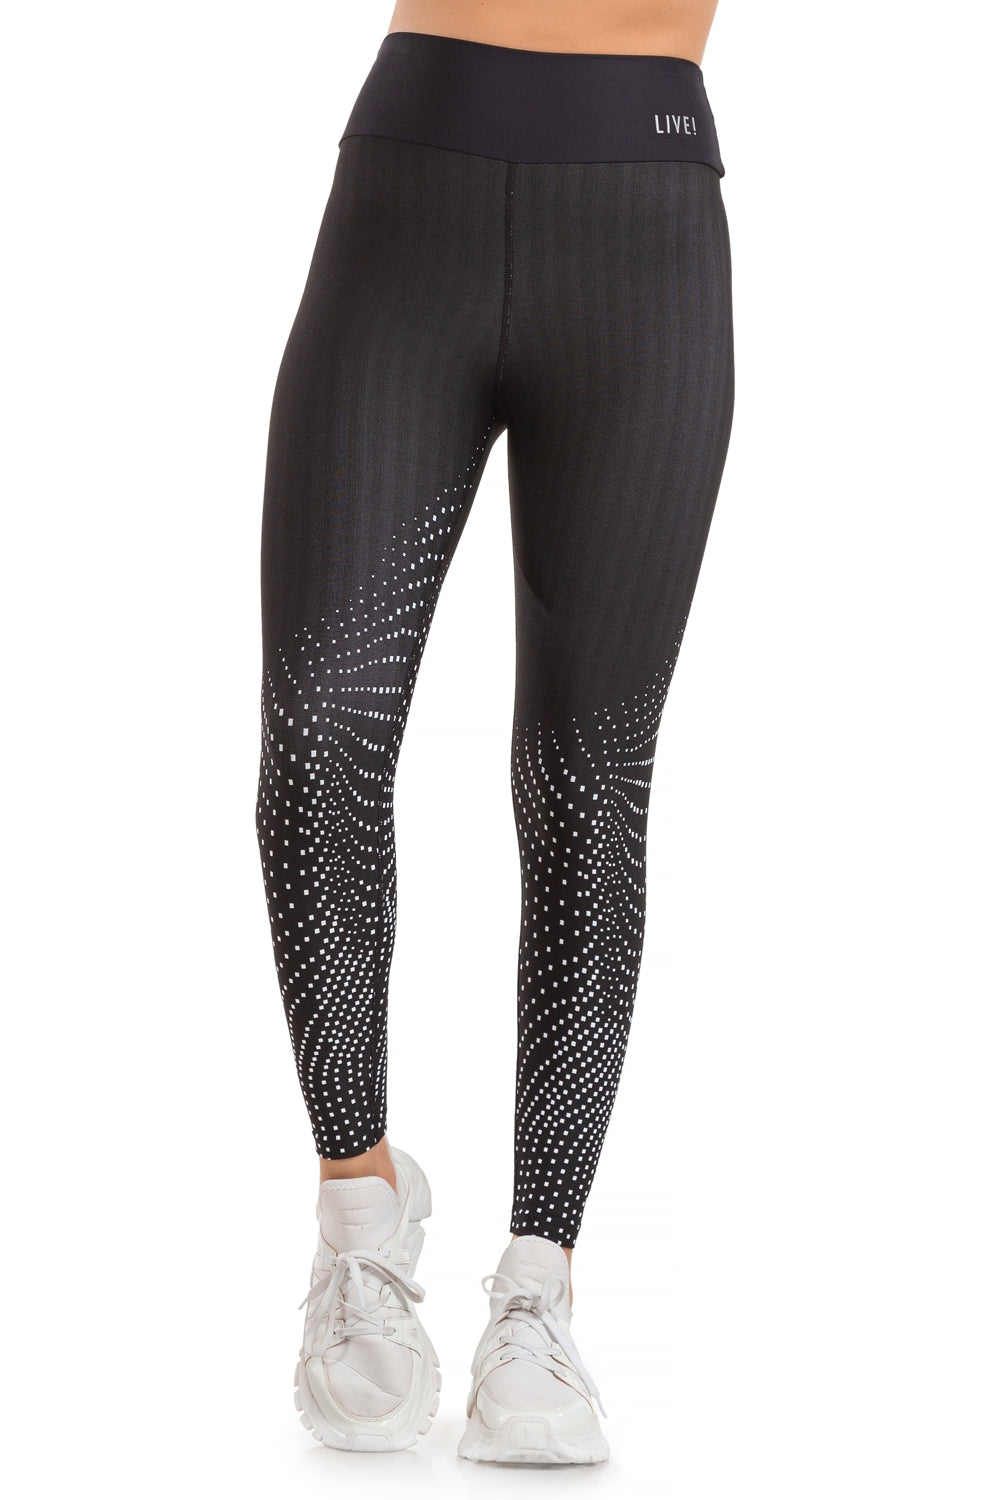 Topographic Legging 1